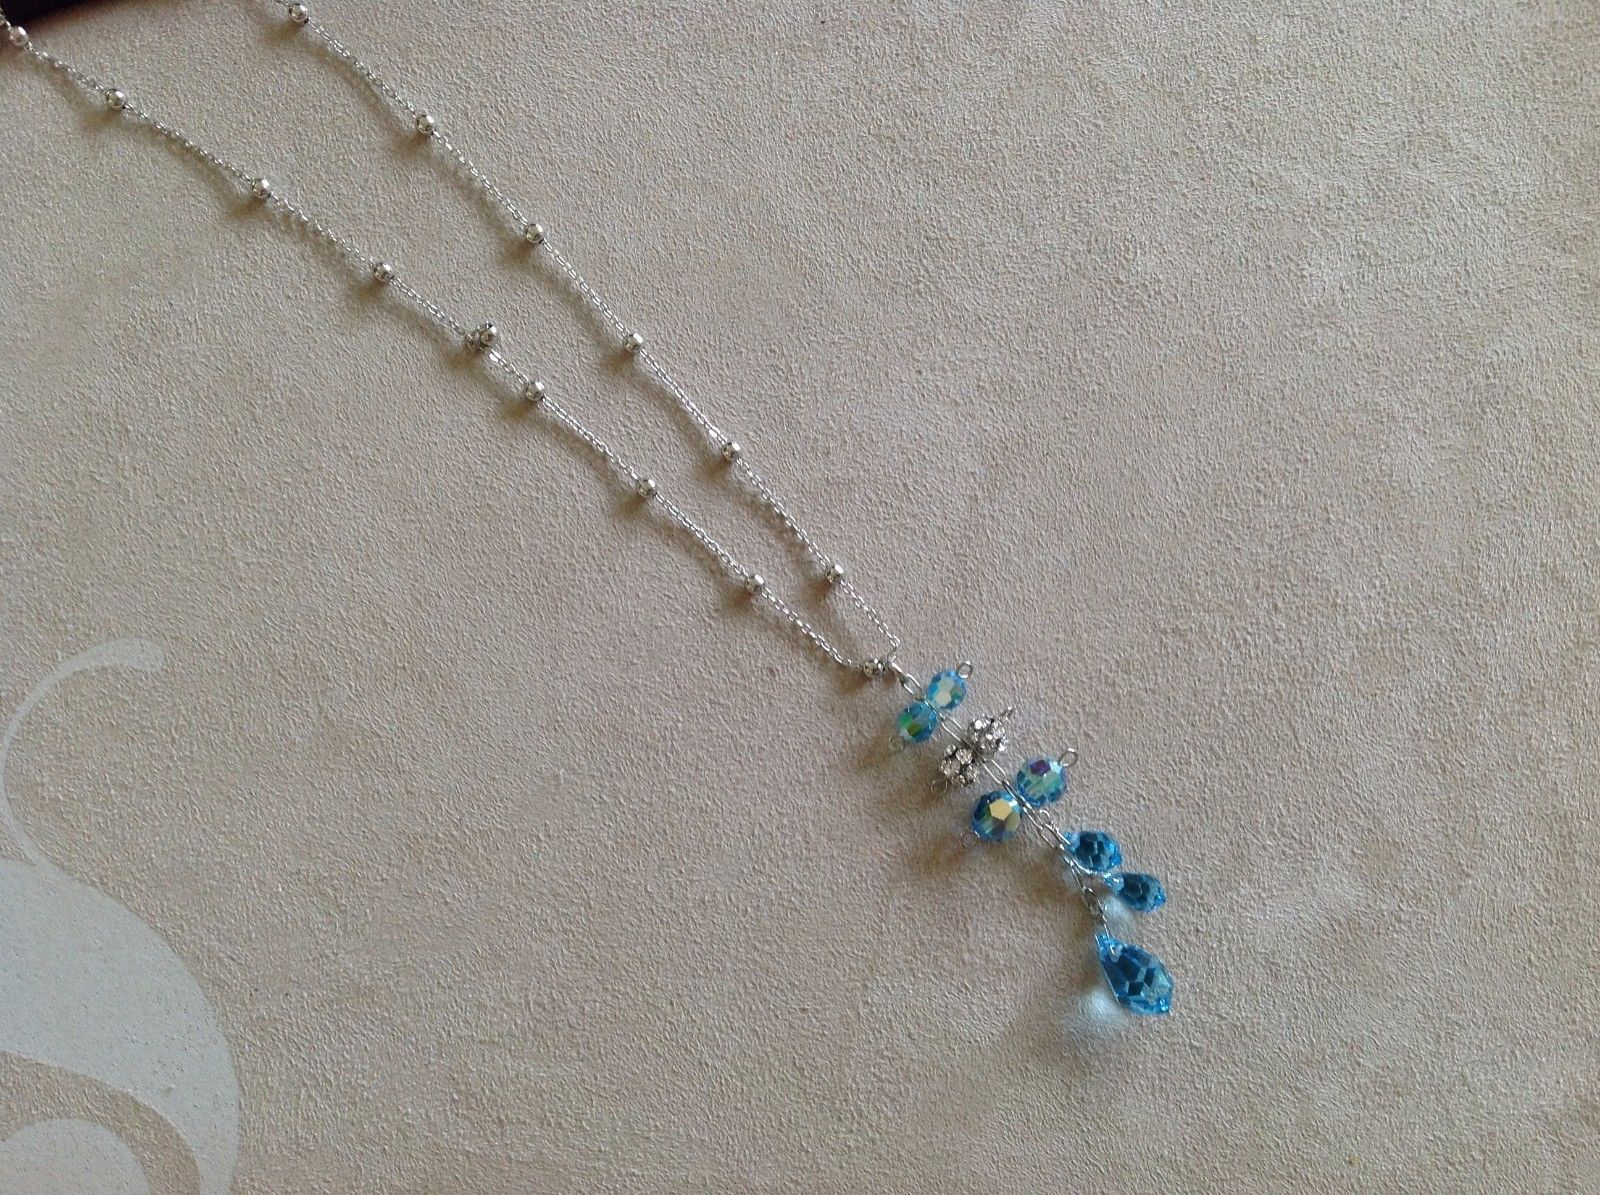 New Allure Blue Crystal Necklace Silver Toned